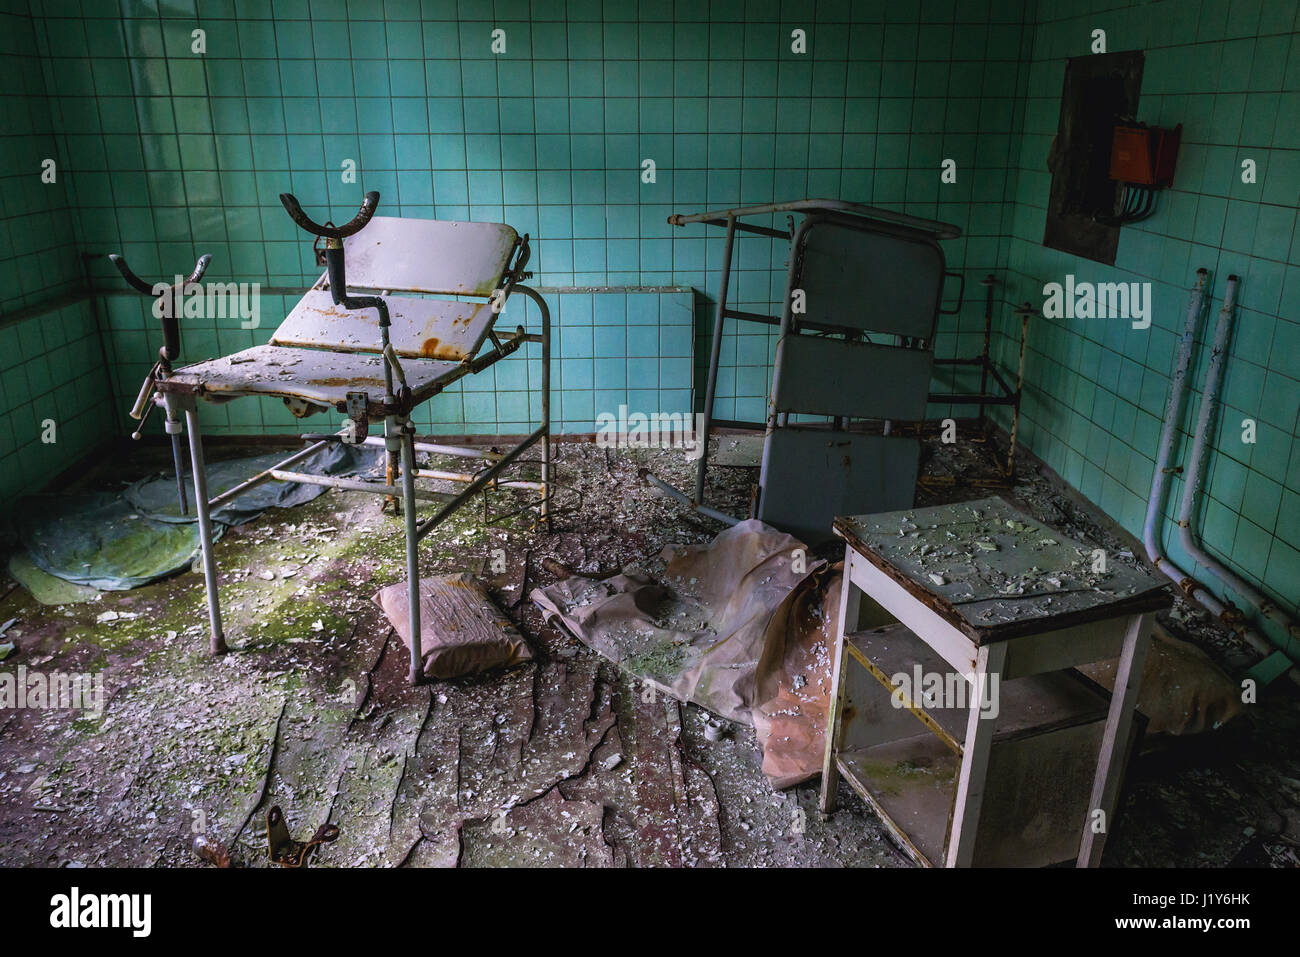 an examination of the chernobyl crisis Although chernobyl is actually in northern ukraine, neighbouring  scientists  examining the impact of the chernobyl disaster, belarus is still an.